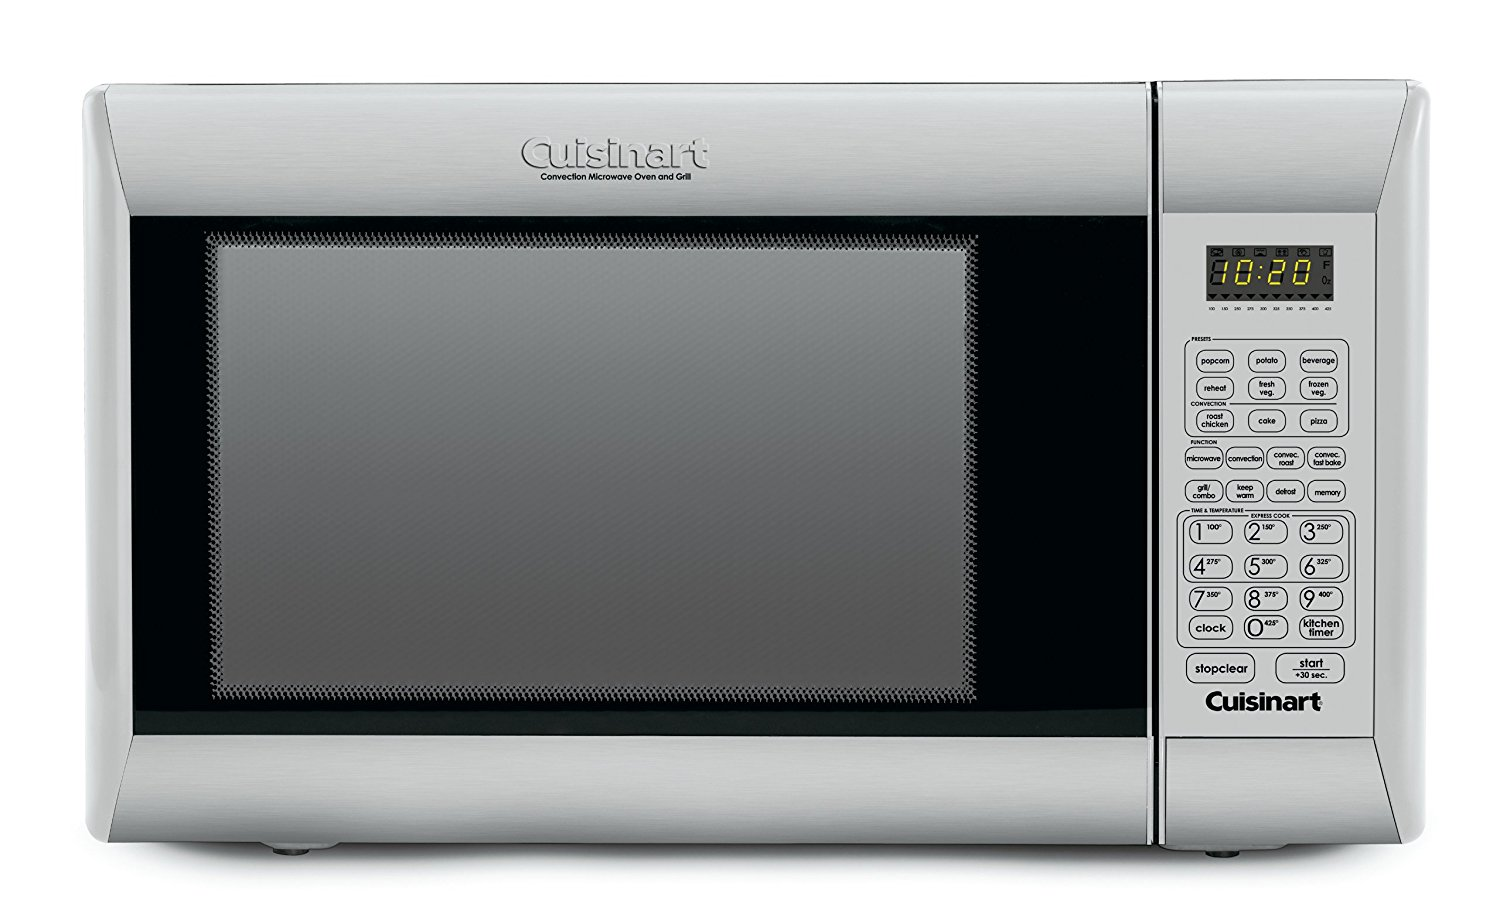 Cuisinart CMW-200 vs Daewoo Retro Microwave Oven detailed comparison as of  2018 - Slant